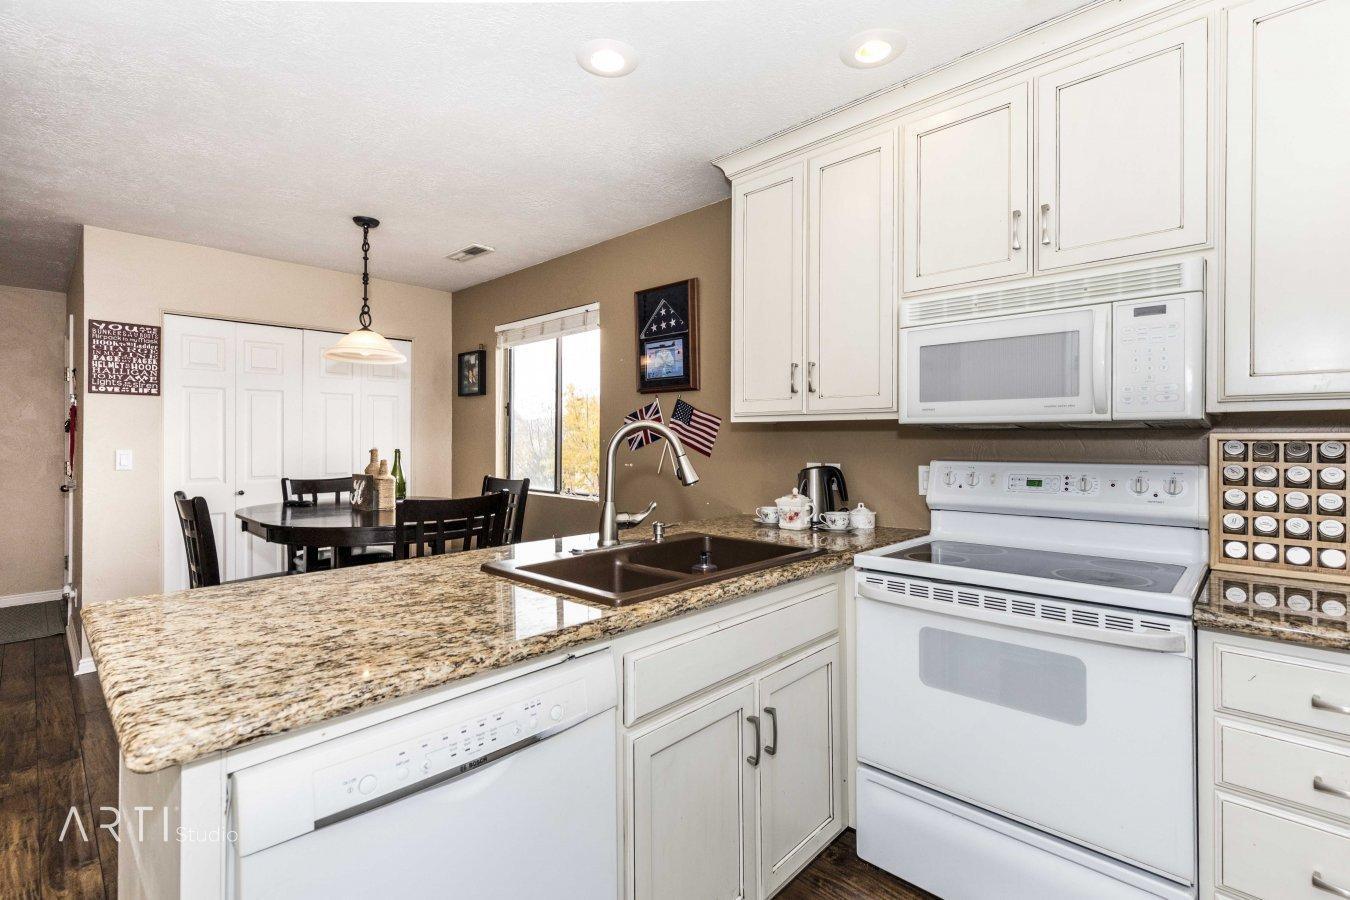 Great Location, Very rare find. Darling Condo features custom cabinets in kitchen, wood laminate flooring, custom sliding barn door for back deck access. Views of Pine Valley Mountain.